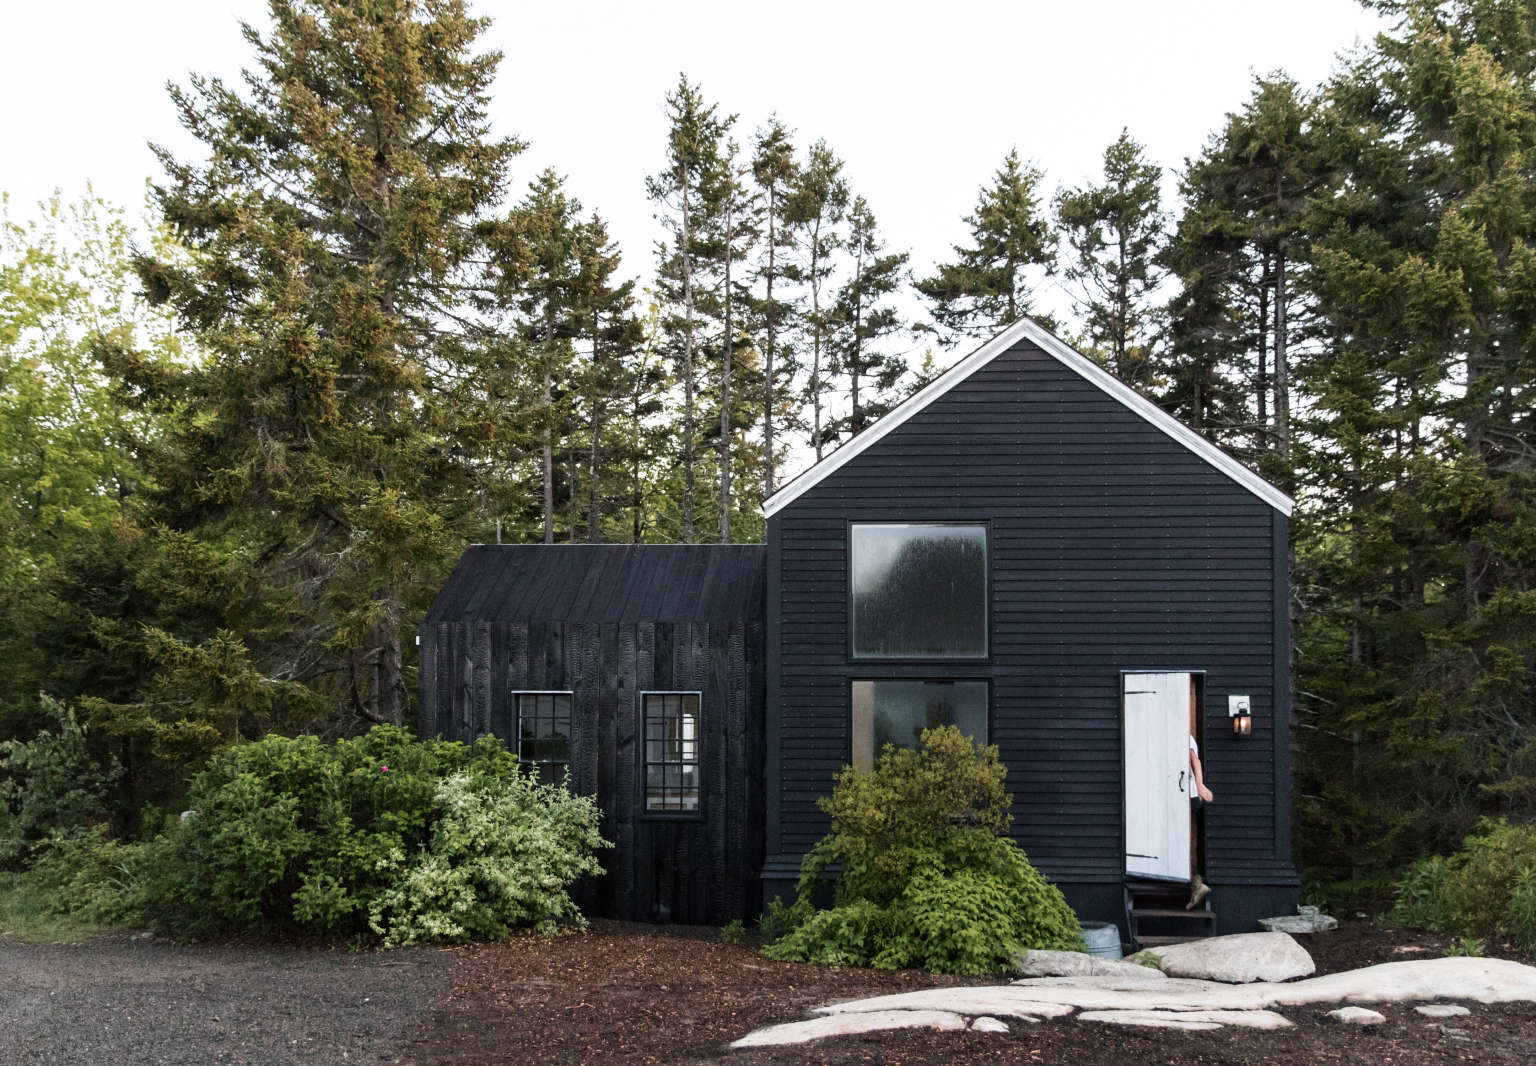 The Soot House: Conjuring the Ghosts of Old New England on Spruce Head in Maine